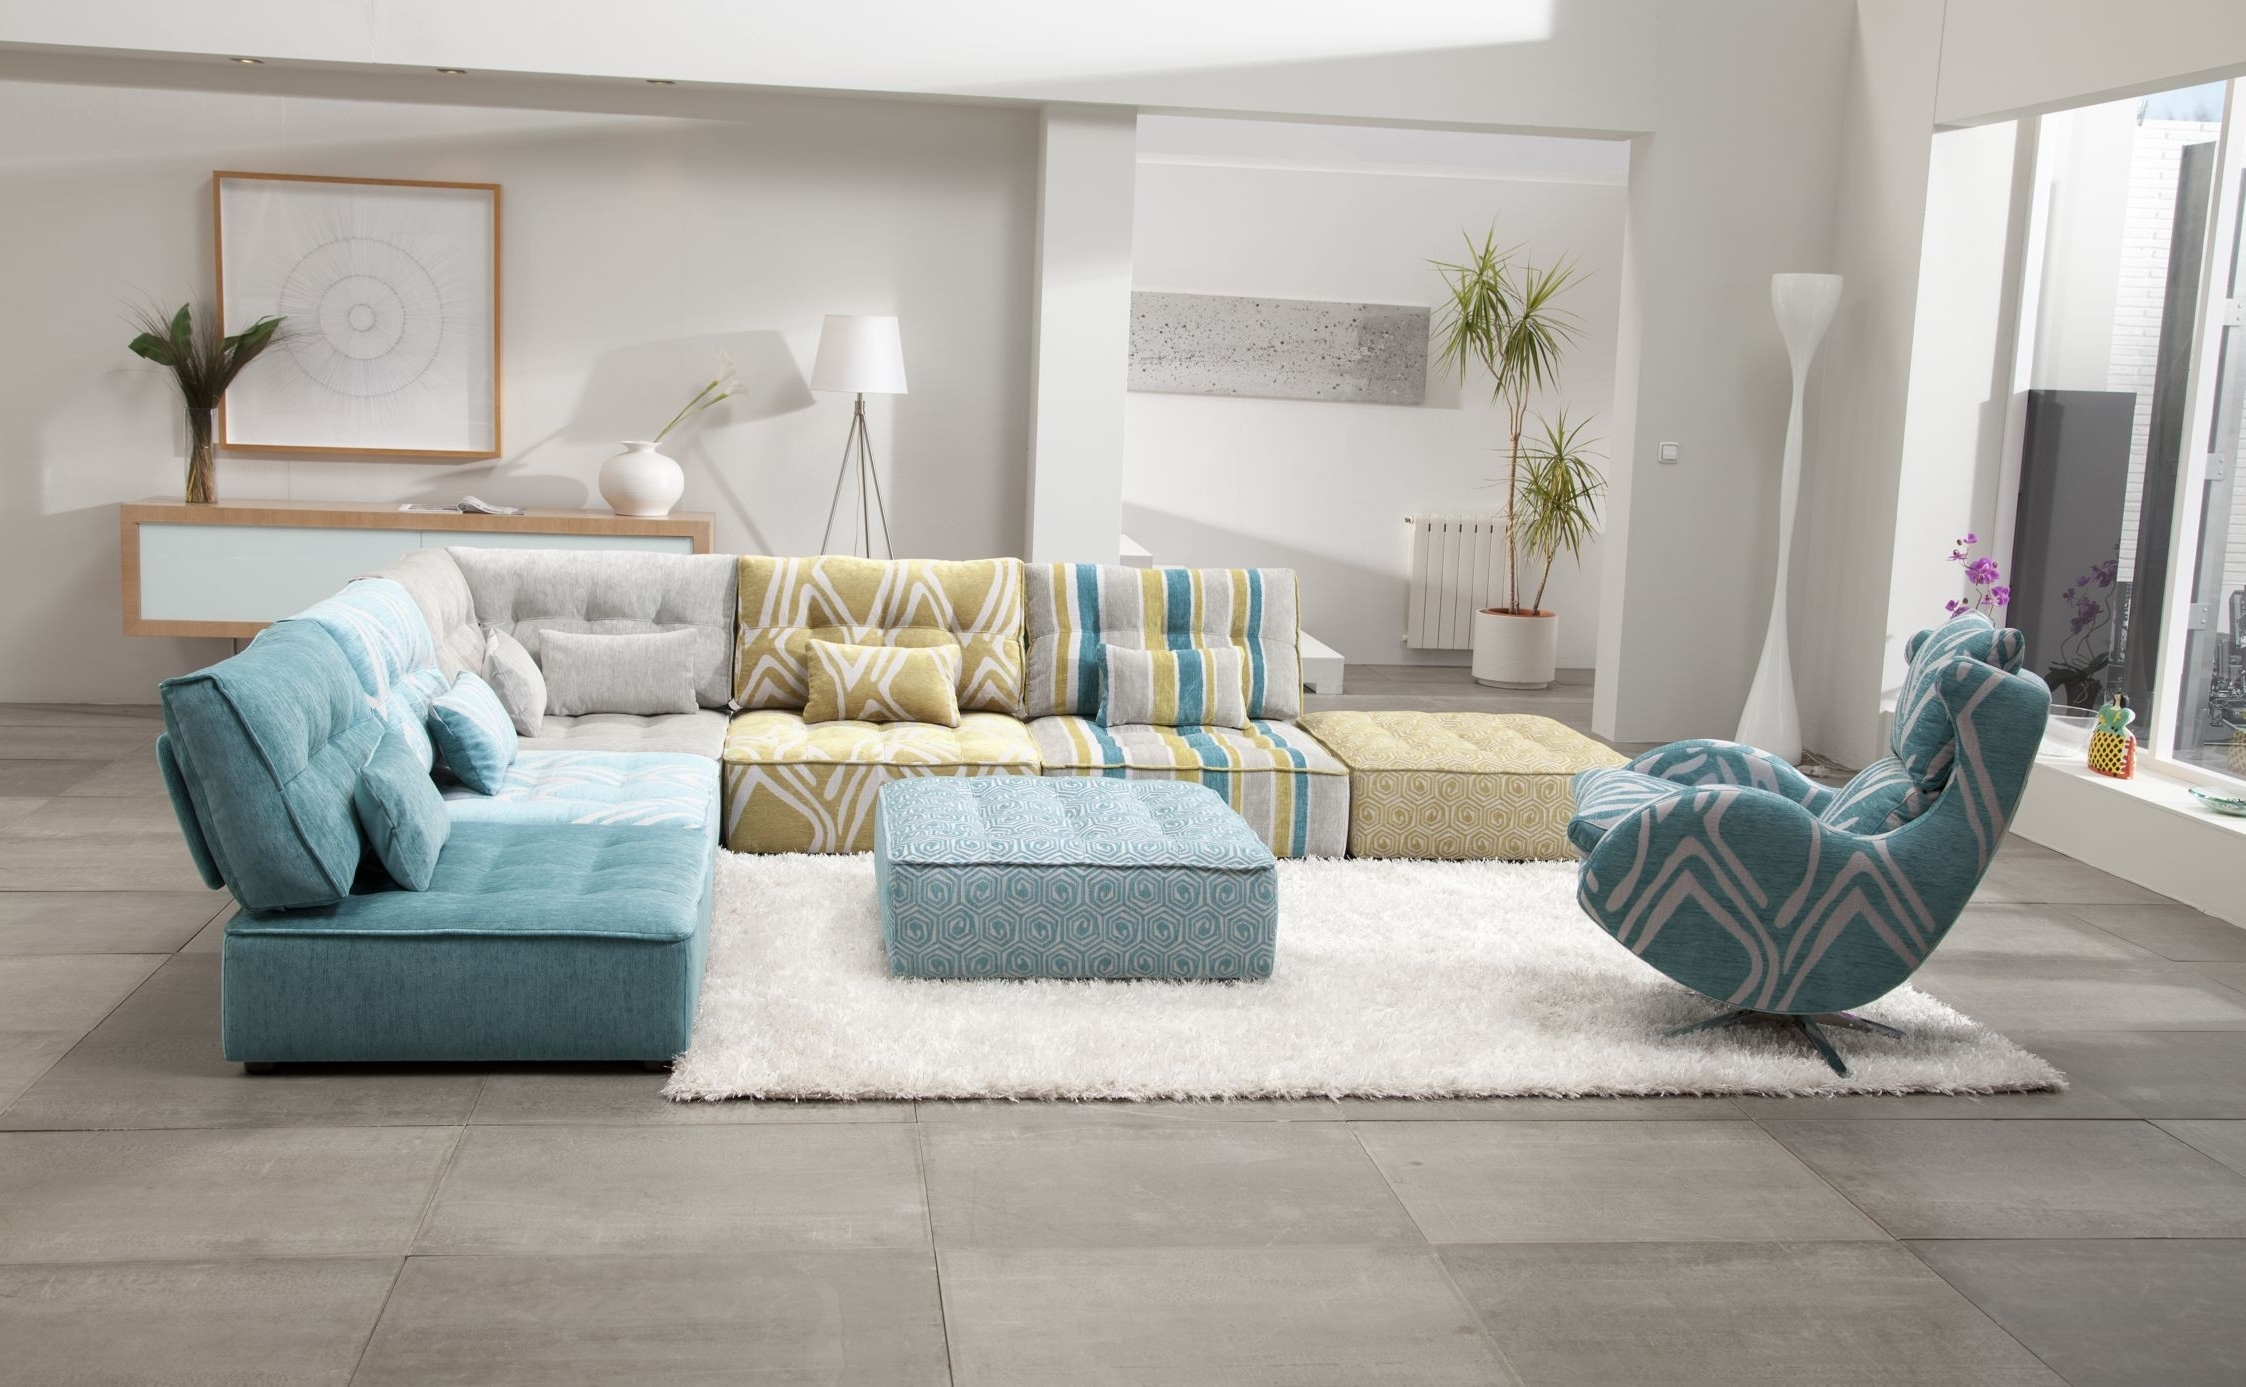 Famous Elegant Sectional Sofas With Living Room Design: Comfy Sofa Sectionals For Home Interior Design (View 17 of 20)